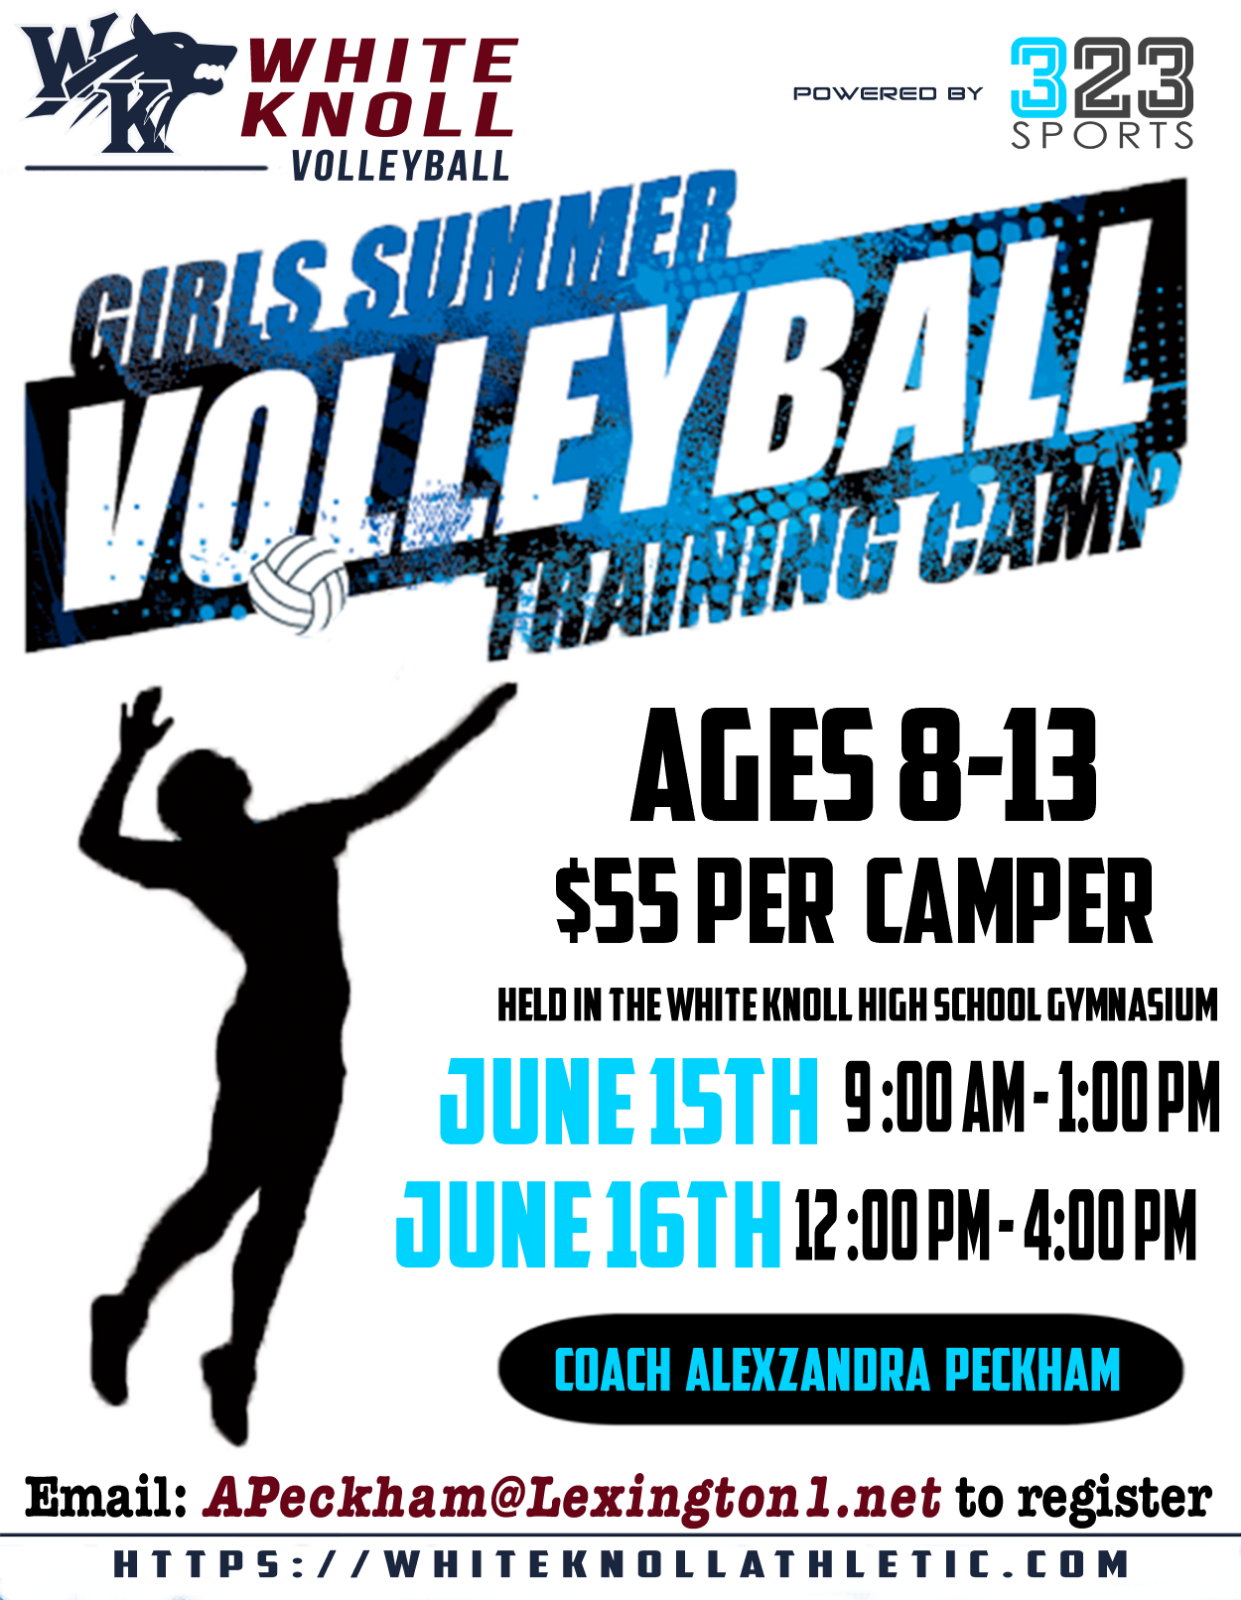 Volleyball Camp Information